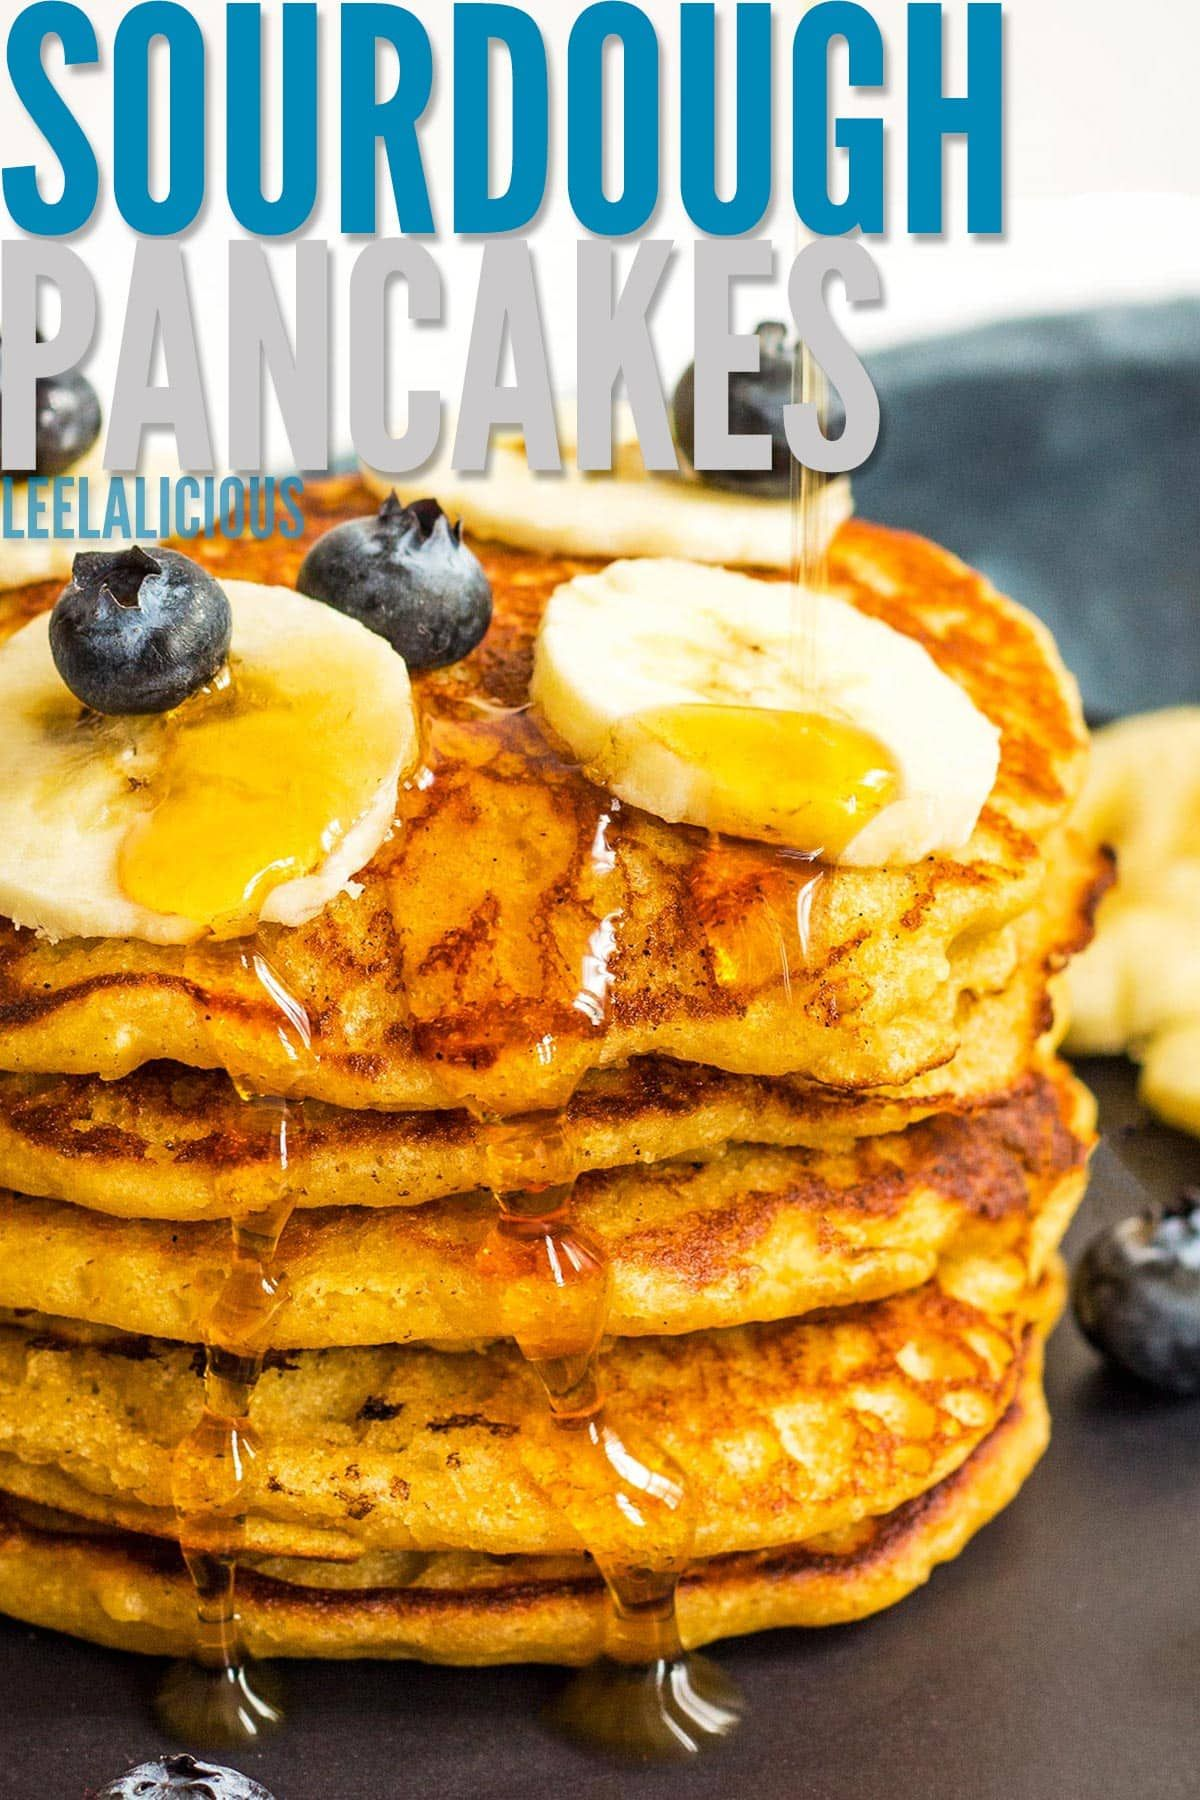 These Sourdough Pancakes Are Incredibly Fluffy With A Hint Of Sourdough Tang This Is A Great Pancake Su In 2020 Sourdough Pancakes Sourdough Sourdough Pancakes Recipe